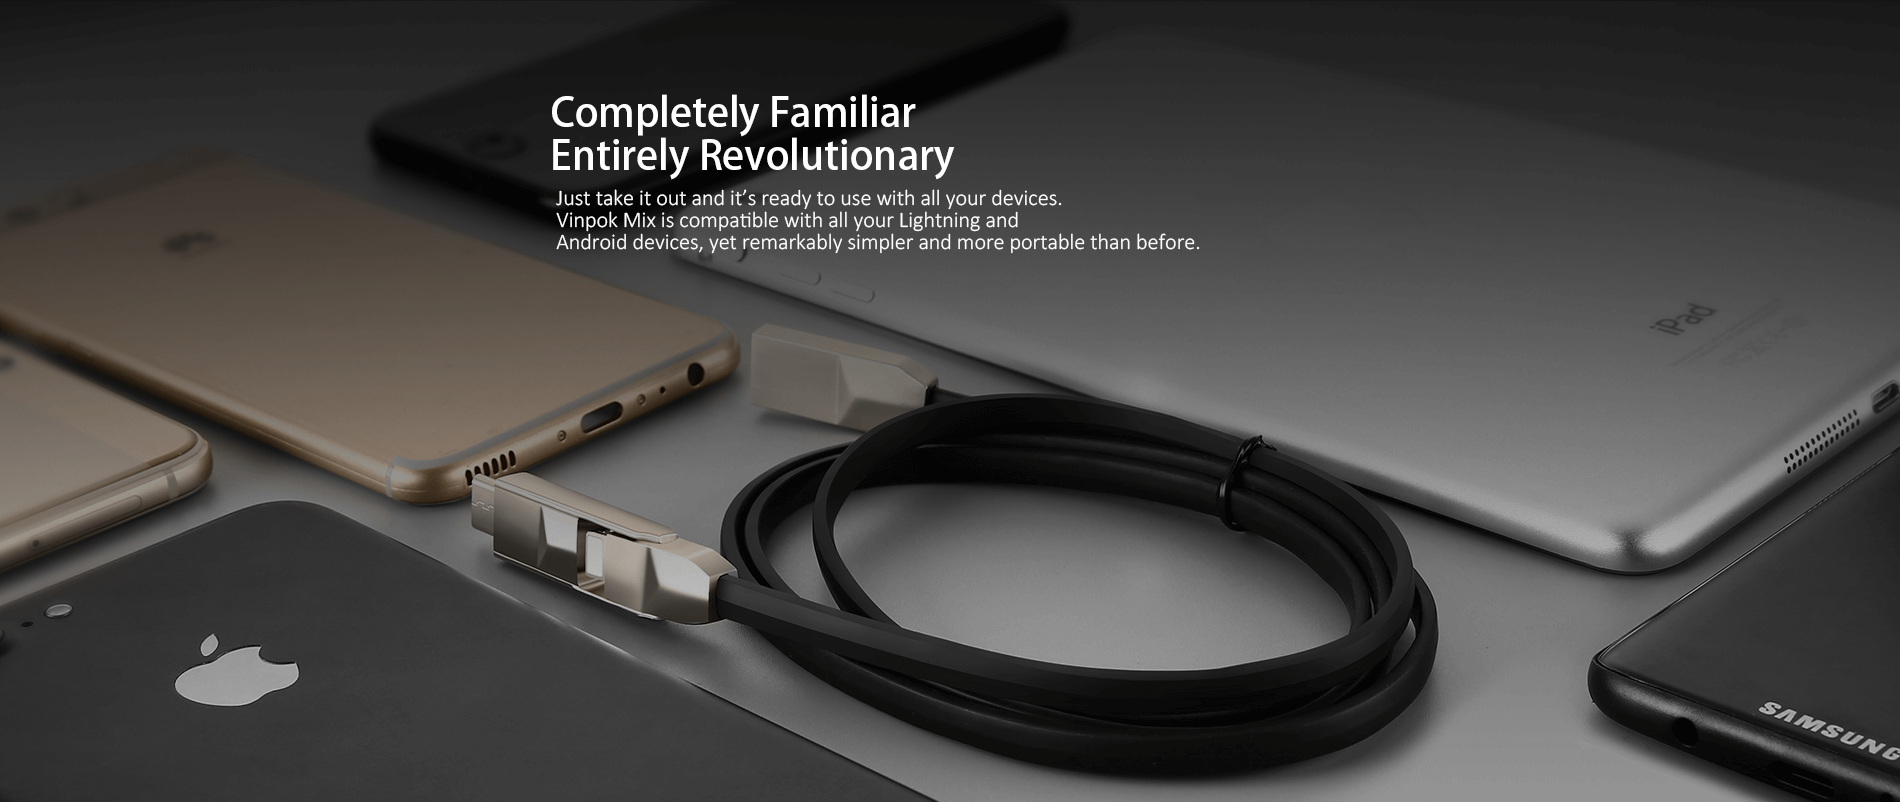 Vinpok Mix is a 3-in-1 cable that's compatible with all your iPhone and Android devices.